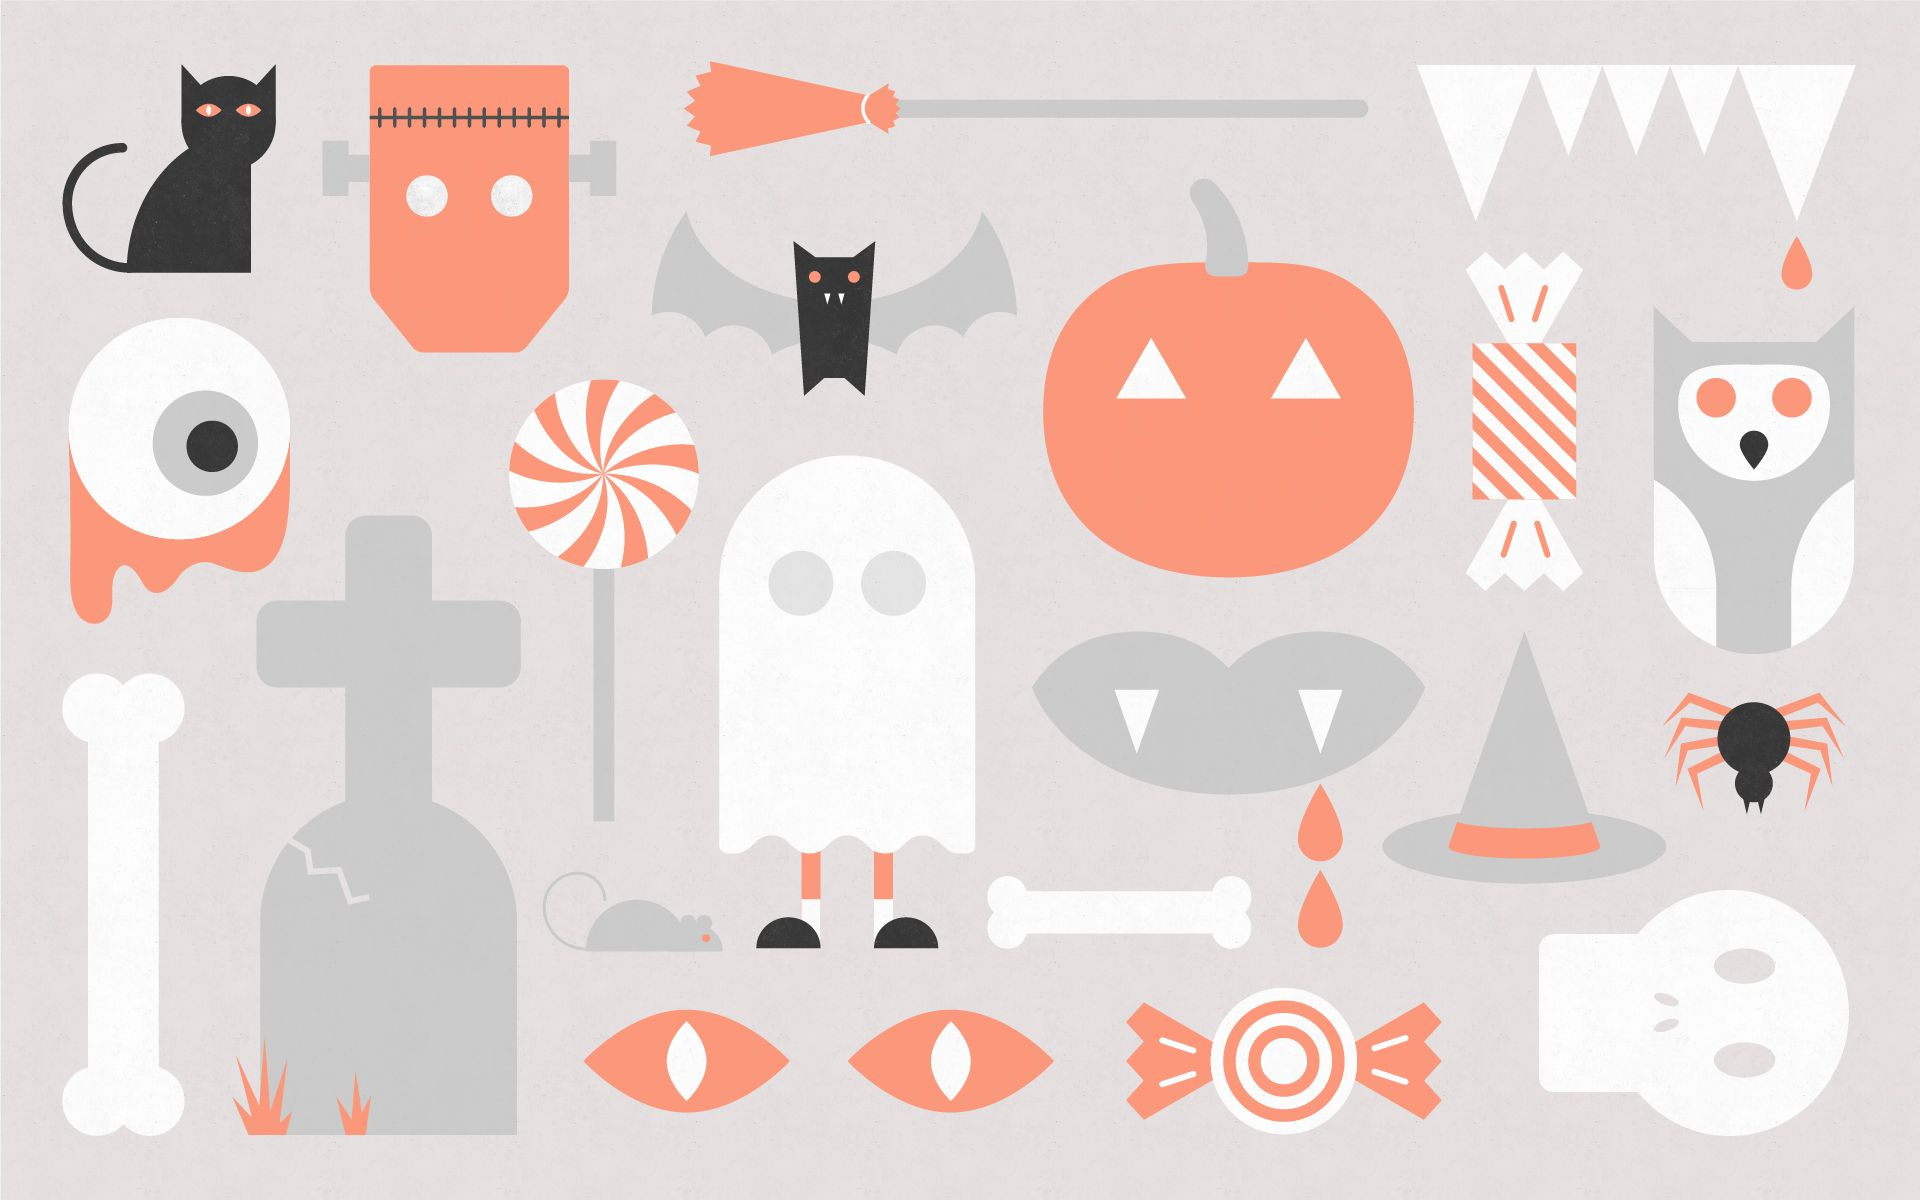 Spencer Harrison Cute Halloween Wallpaper Halloween Desktop Wallpaper Halloween Wallpaper Desktop Wallpaper Fall